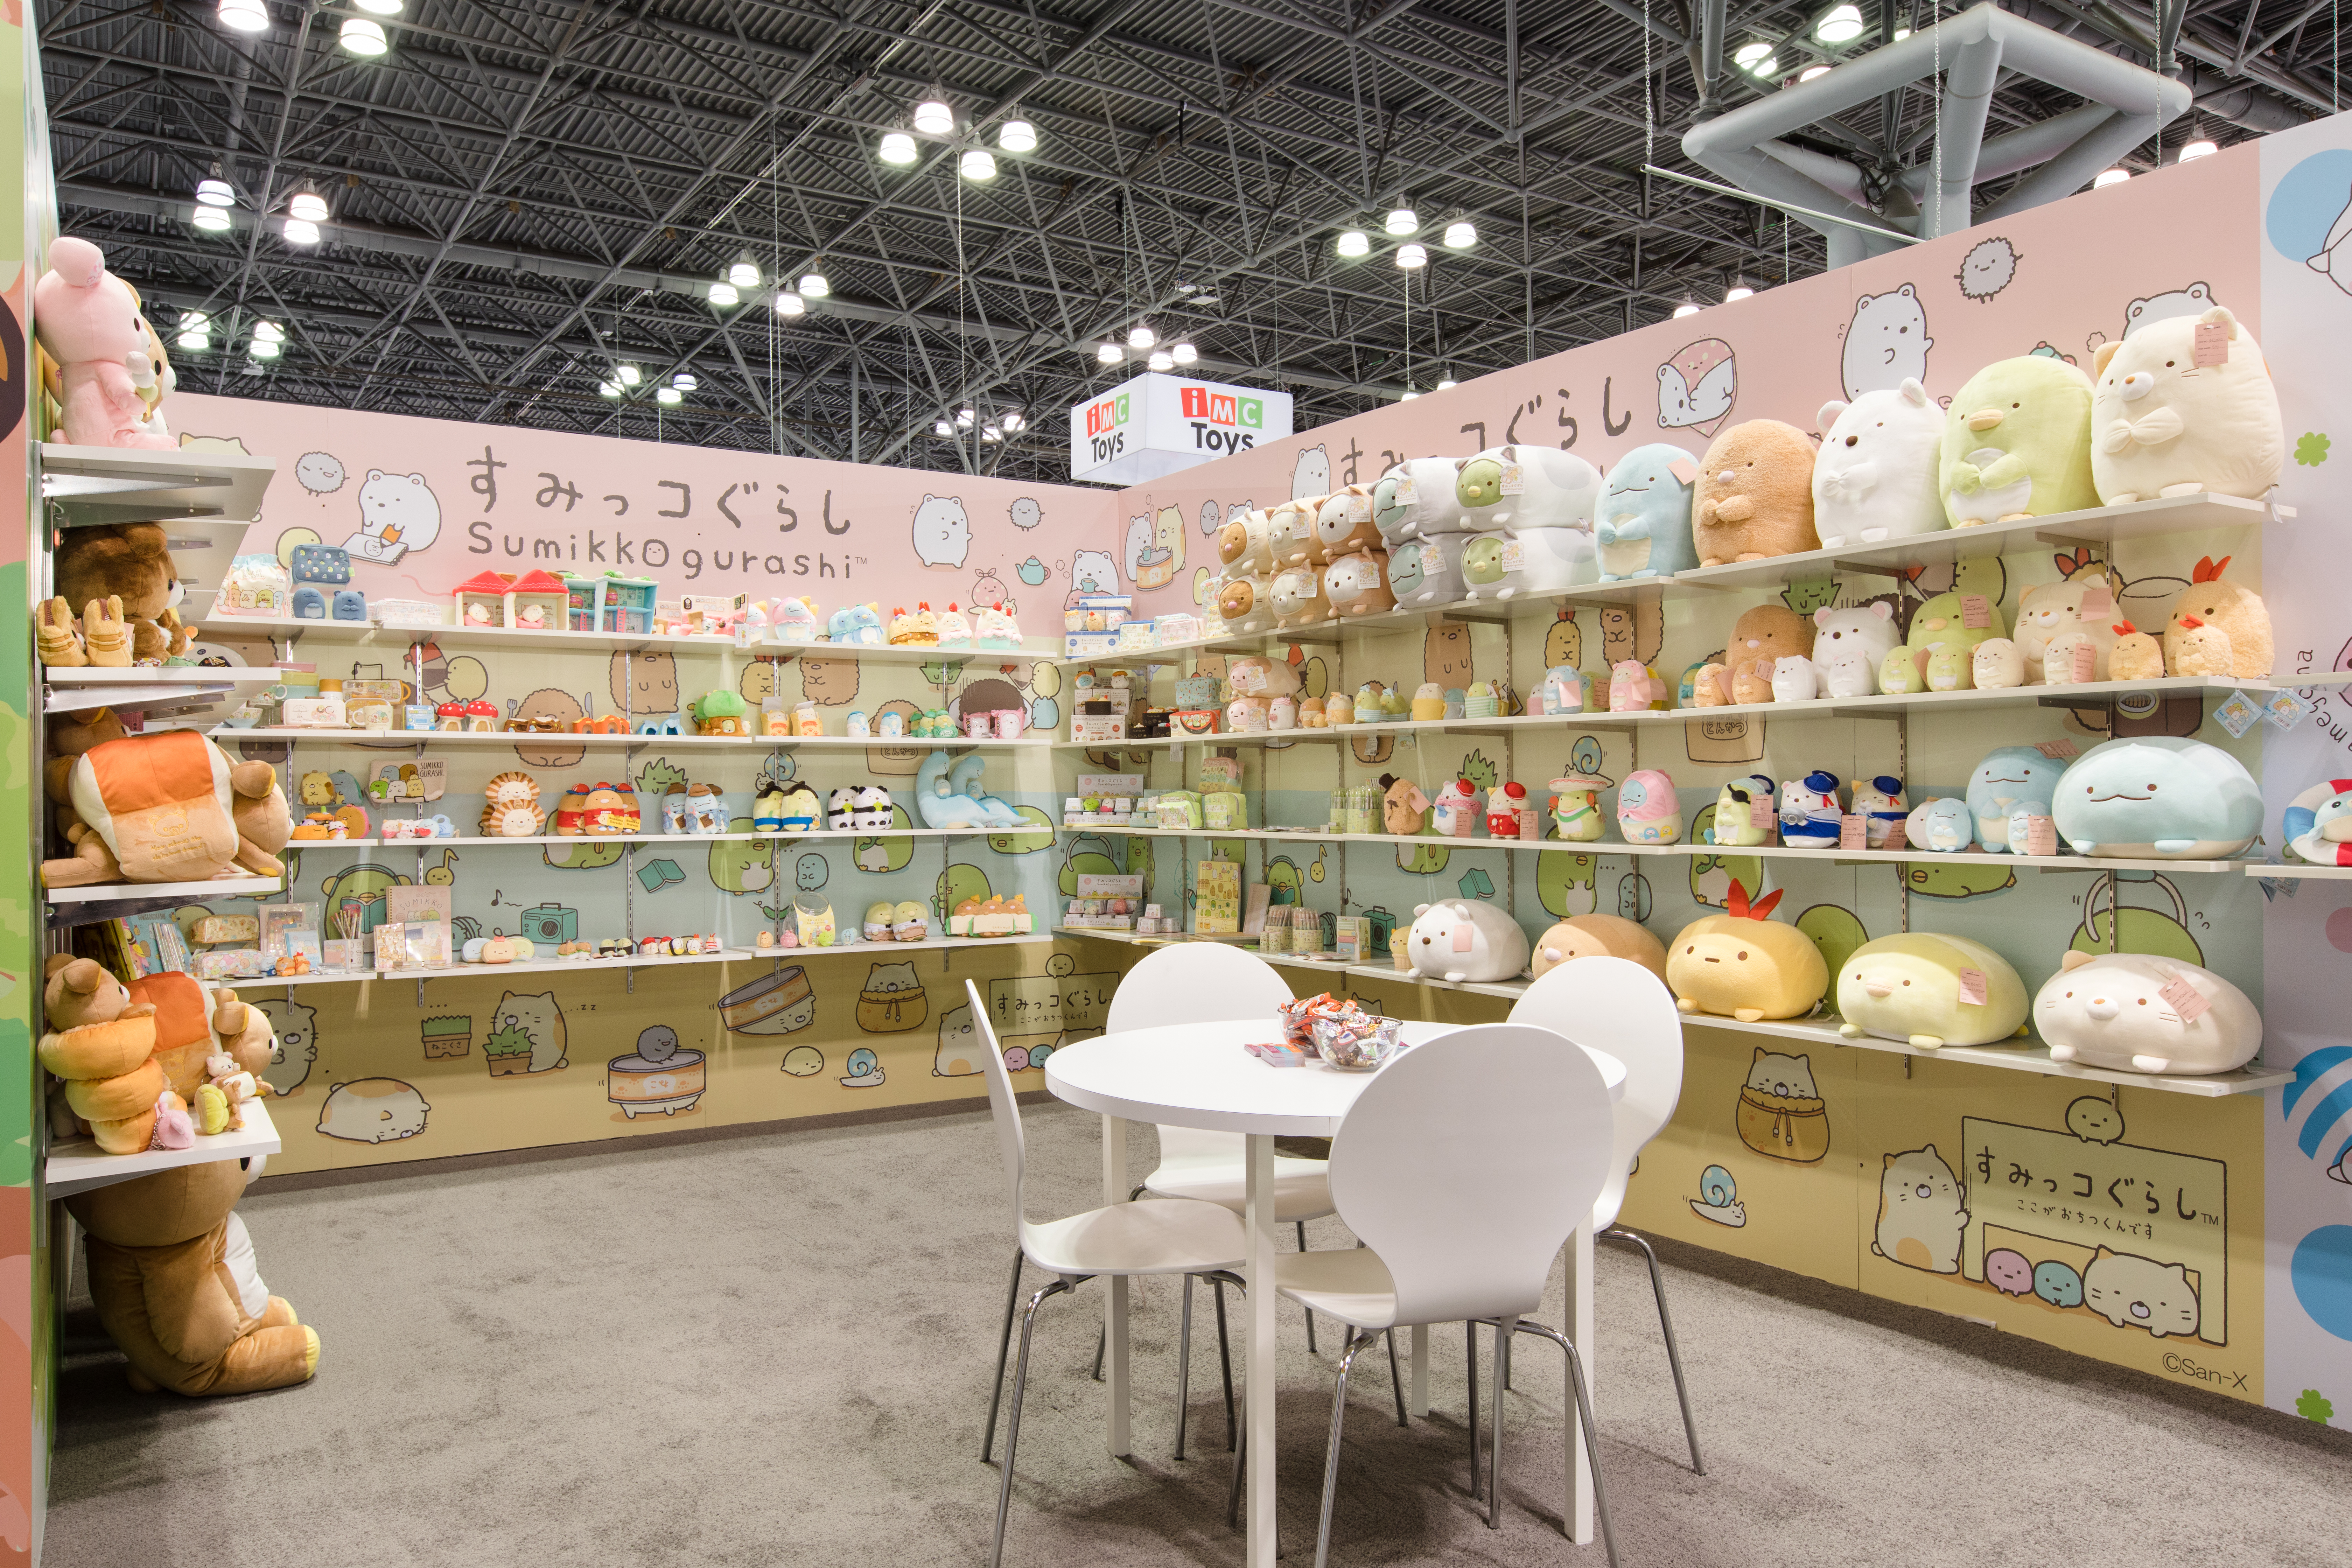 Sumikkogurashi section of New York Toy Fair 2019. 4 shelf rows on 2 walls filled with a varierty of Sumikkogurashi plush.